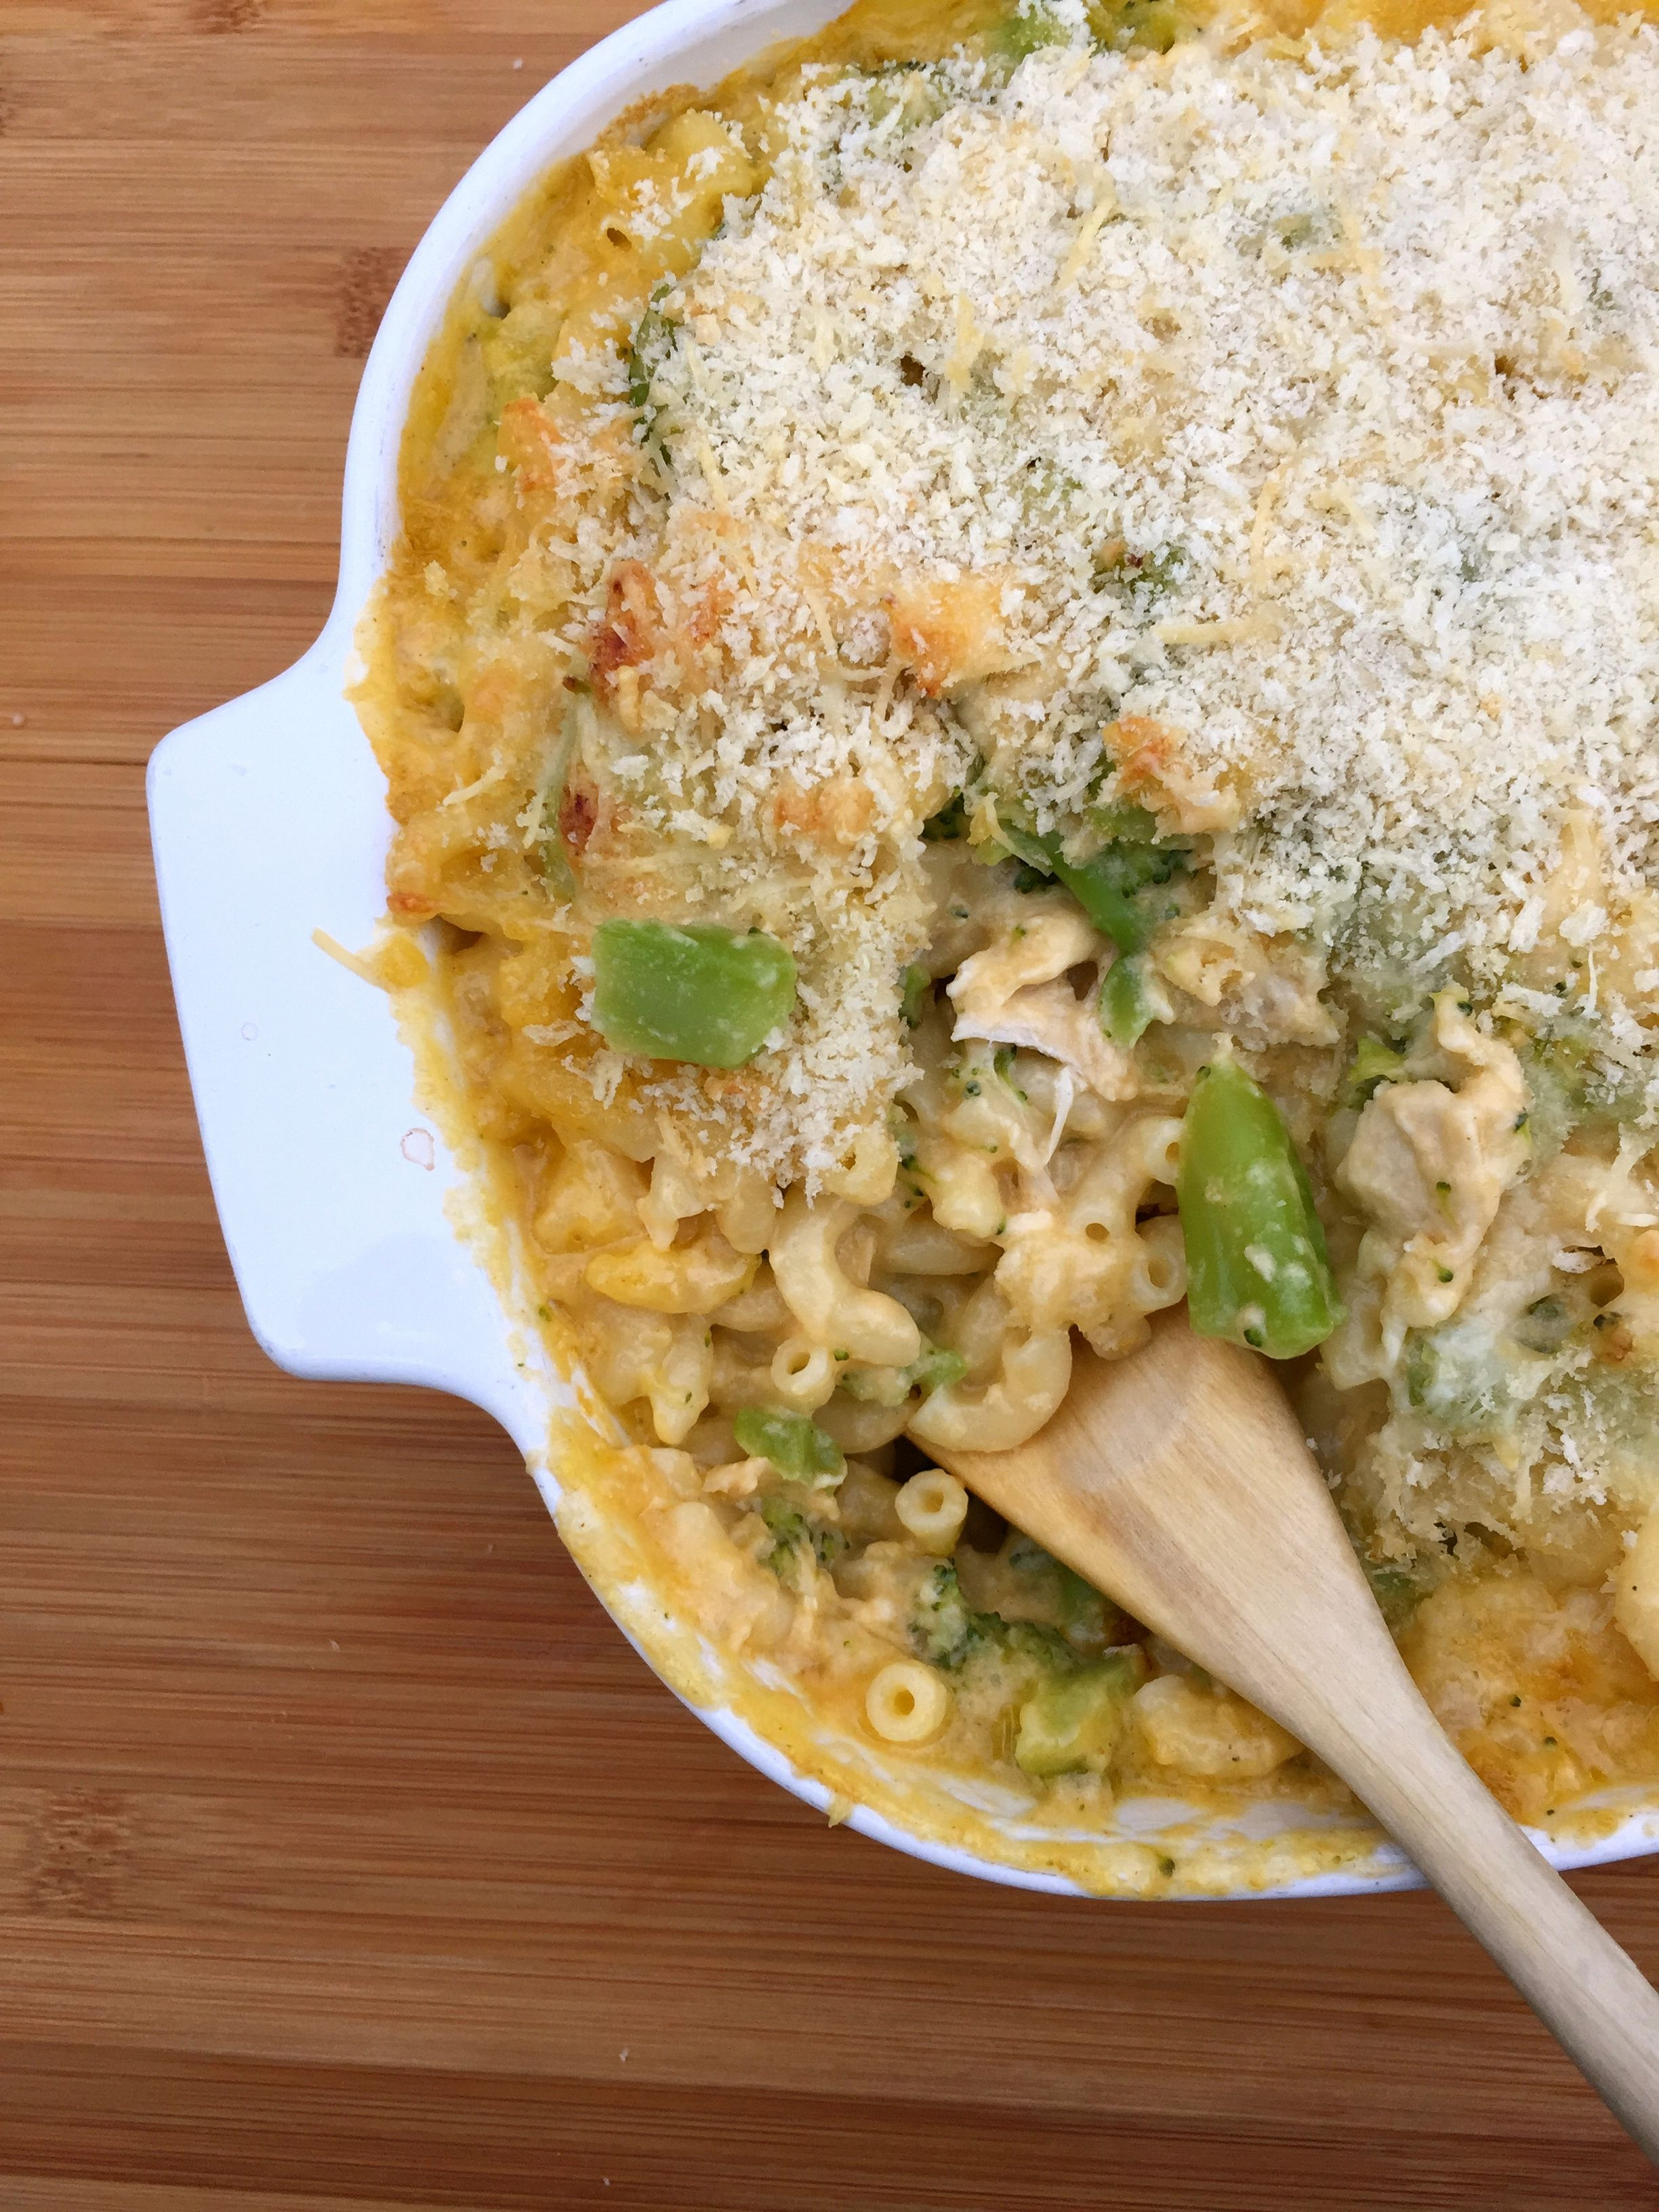 Chicken and Broccoli Macaroni and Cheese from @juliajolliff